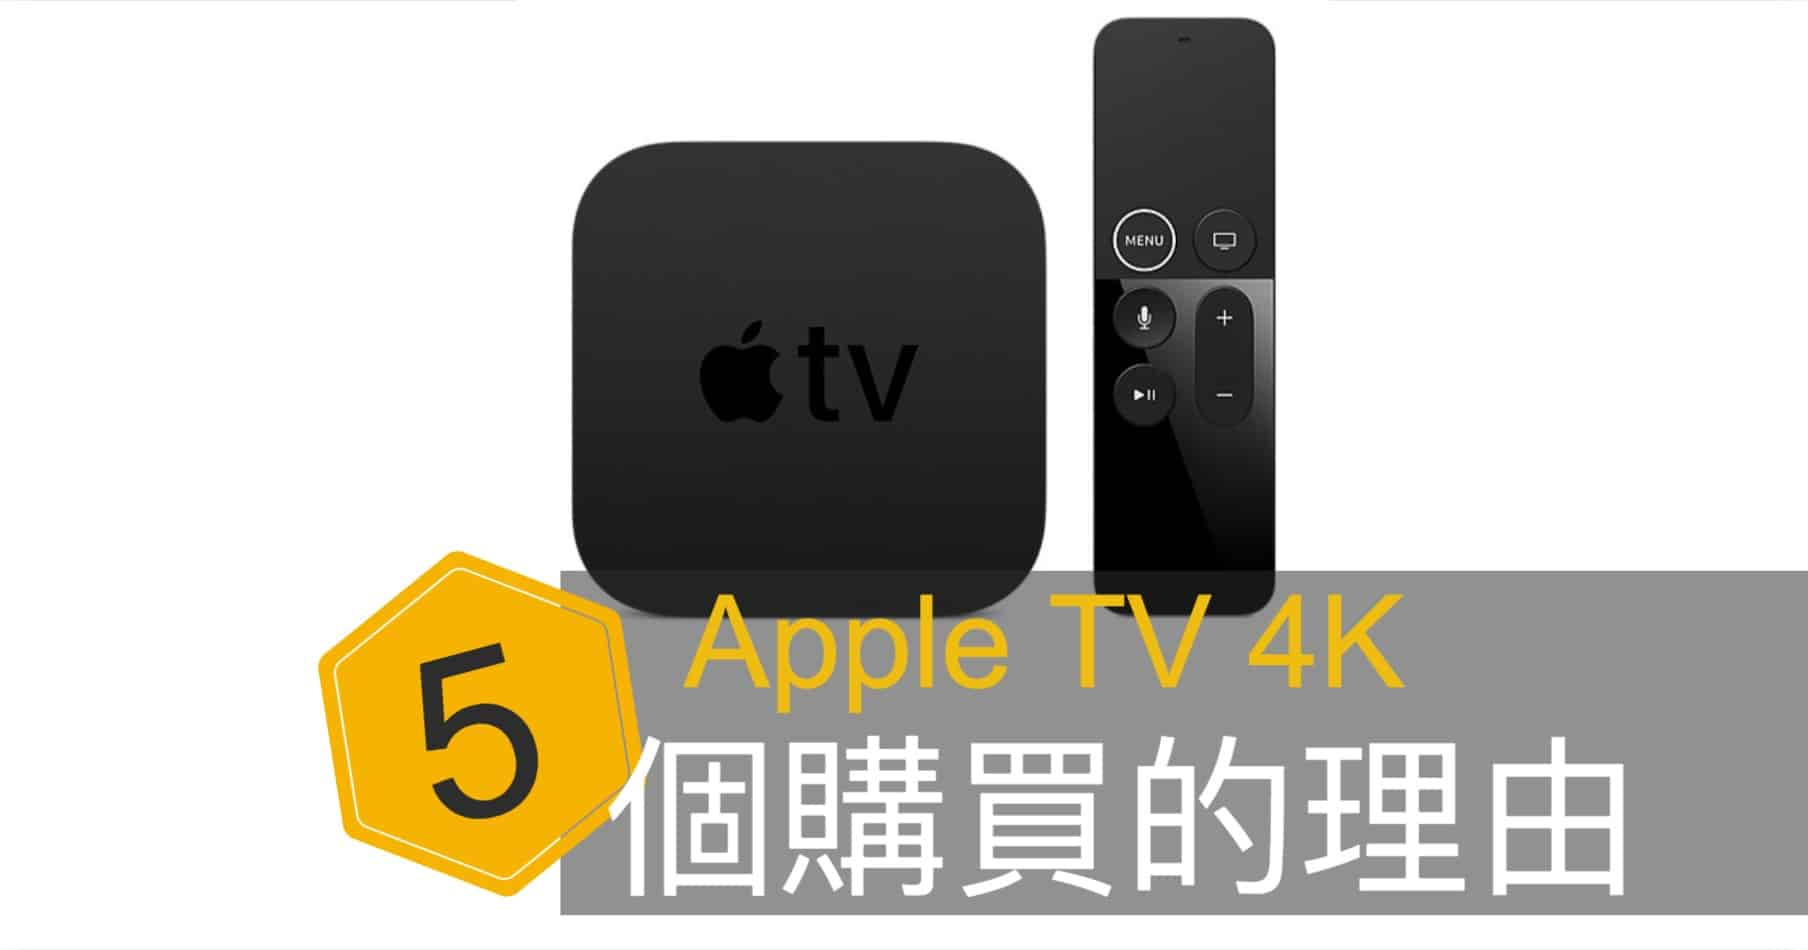 專欄】5 個購買Apple TV 4K 的理由! - New MobileLife 流動日報